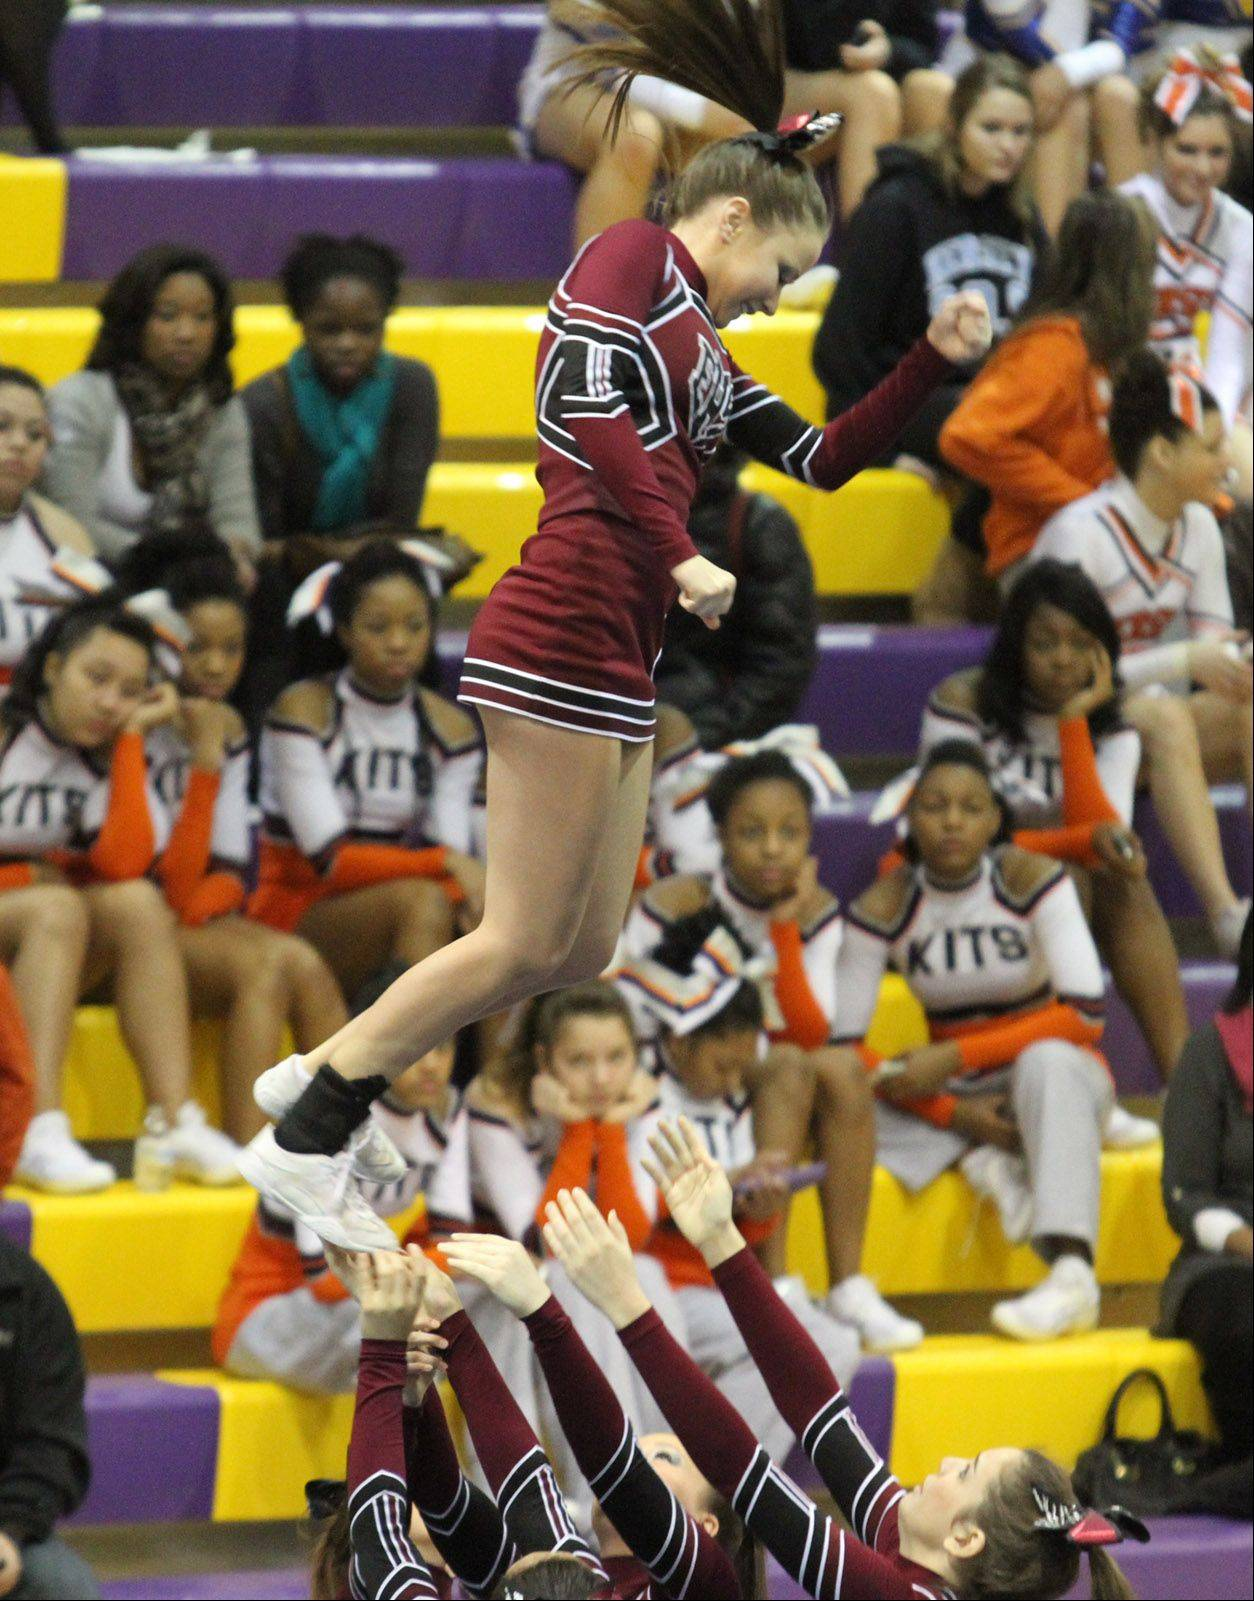 Elgin High School performs at the IHSA competitive cheerleading sectionals in Rolling Meadows on Saturday.